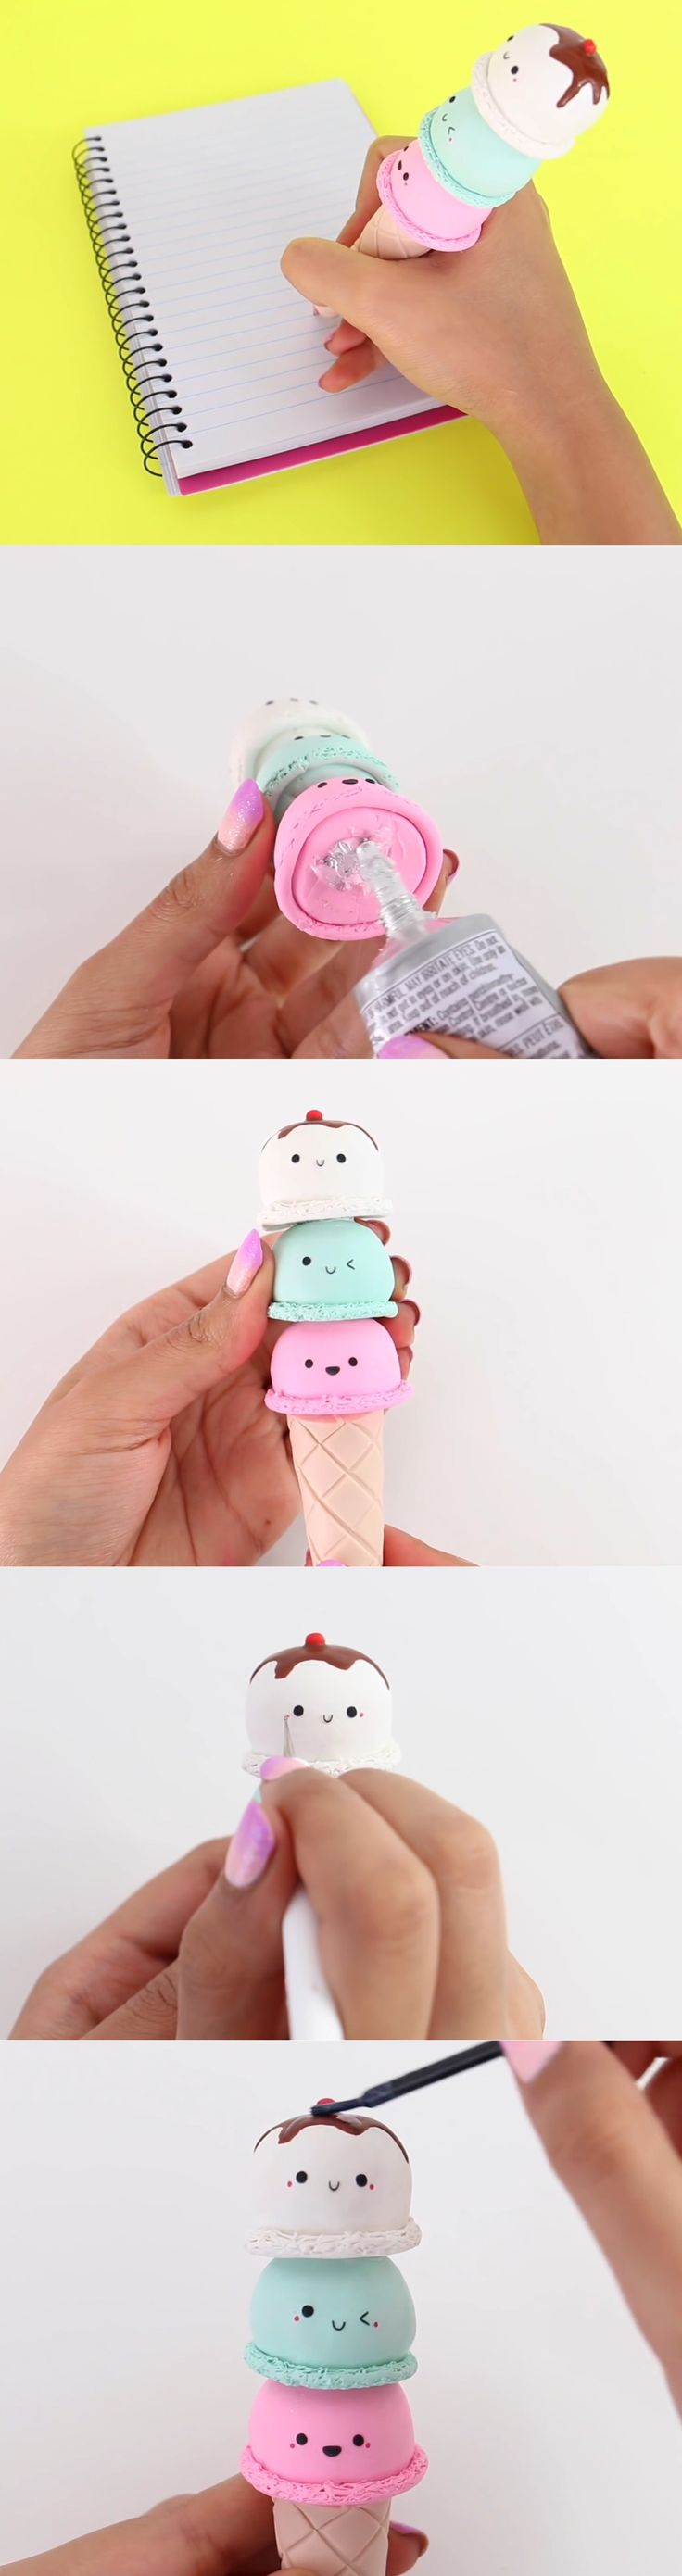 Ice-Cream Pen Part 6|Nim C